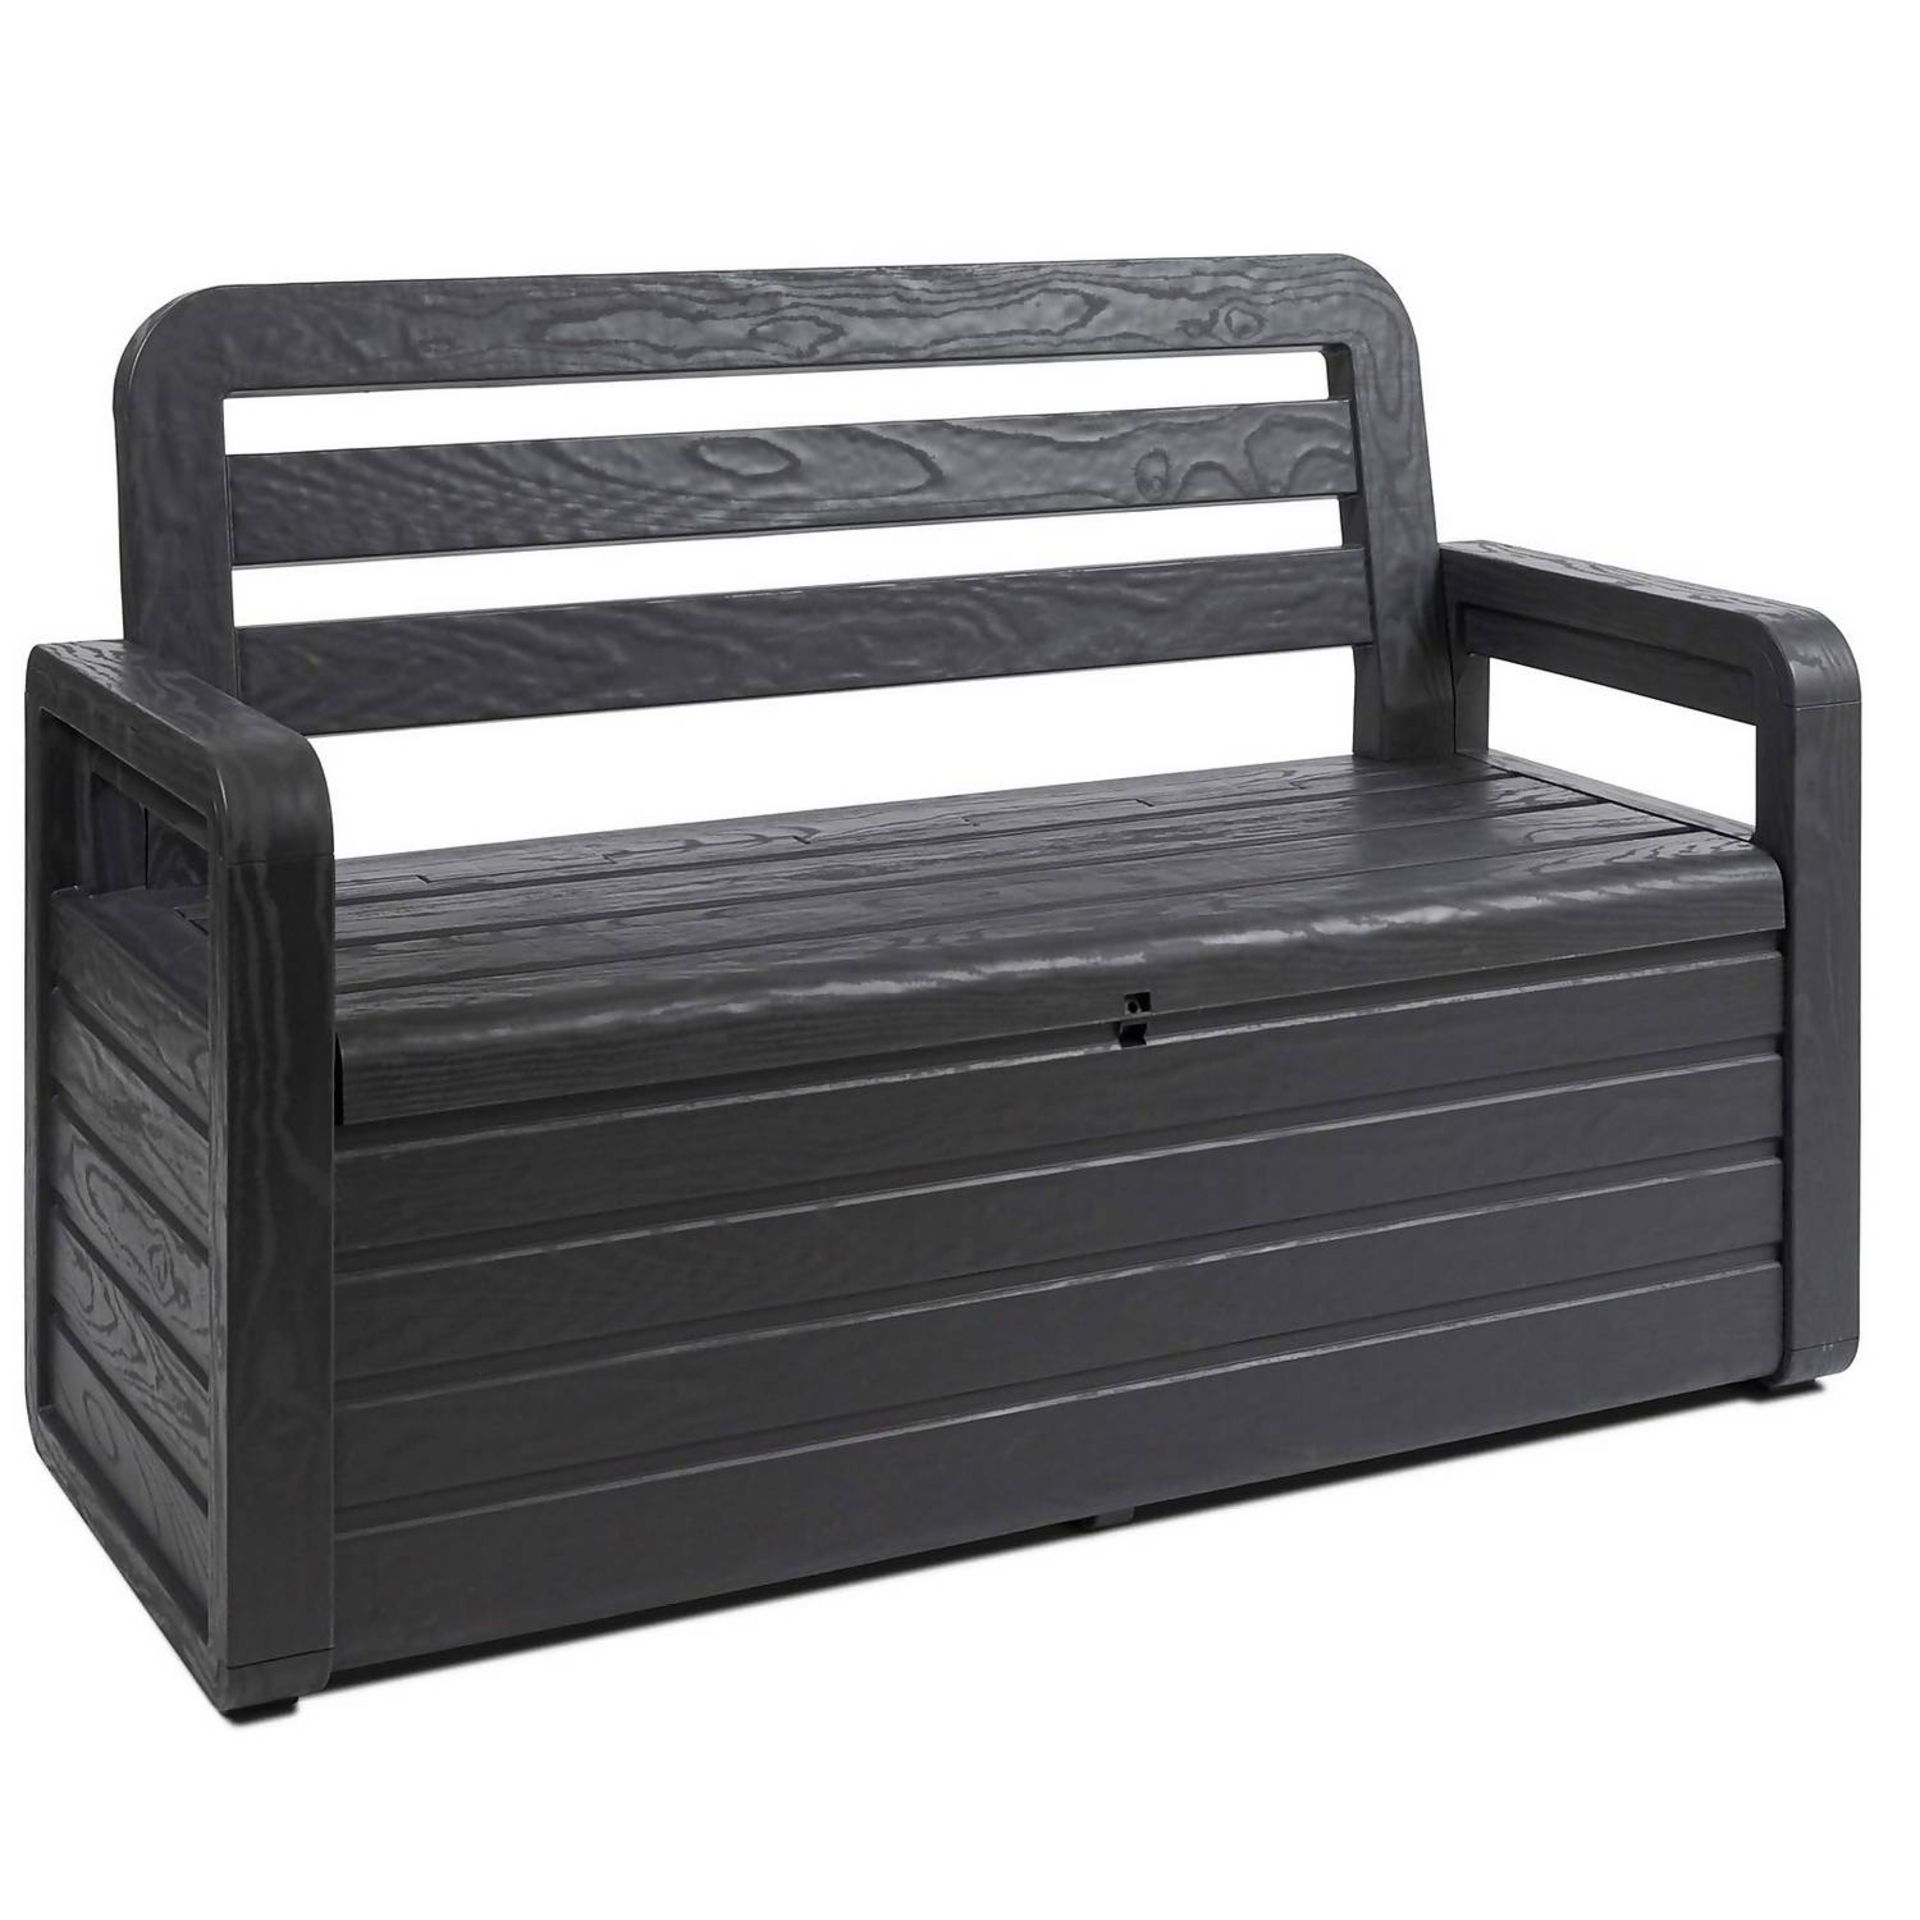 Mixed Single pallet of Home & Garden products. Approx RRP £910 - Image 3 of 5